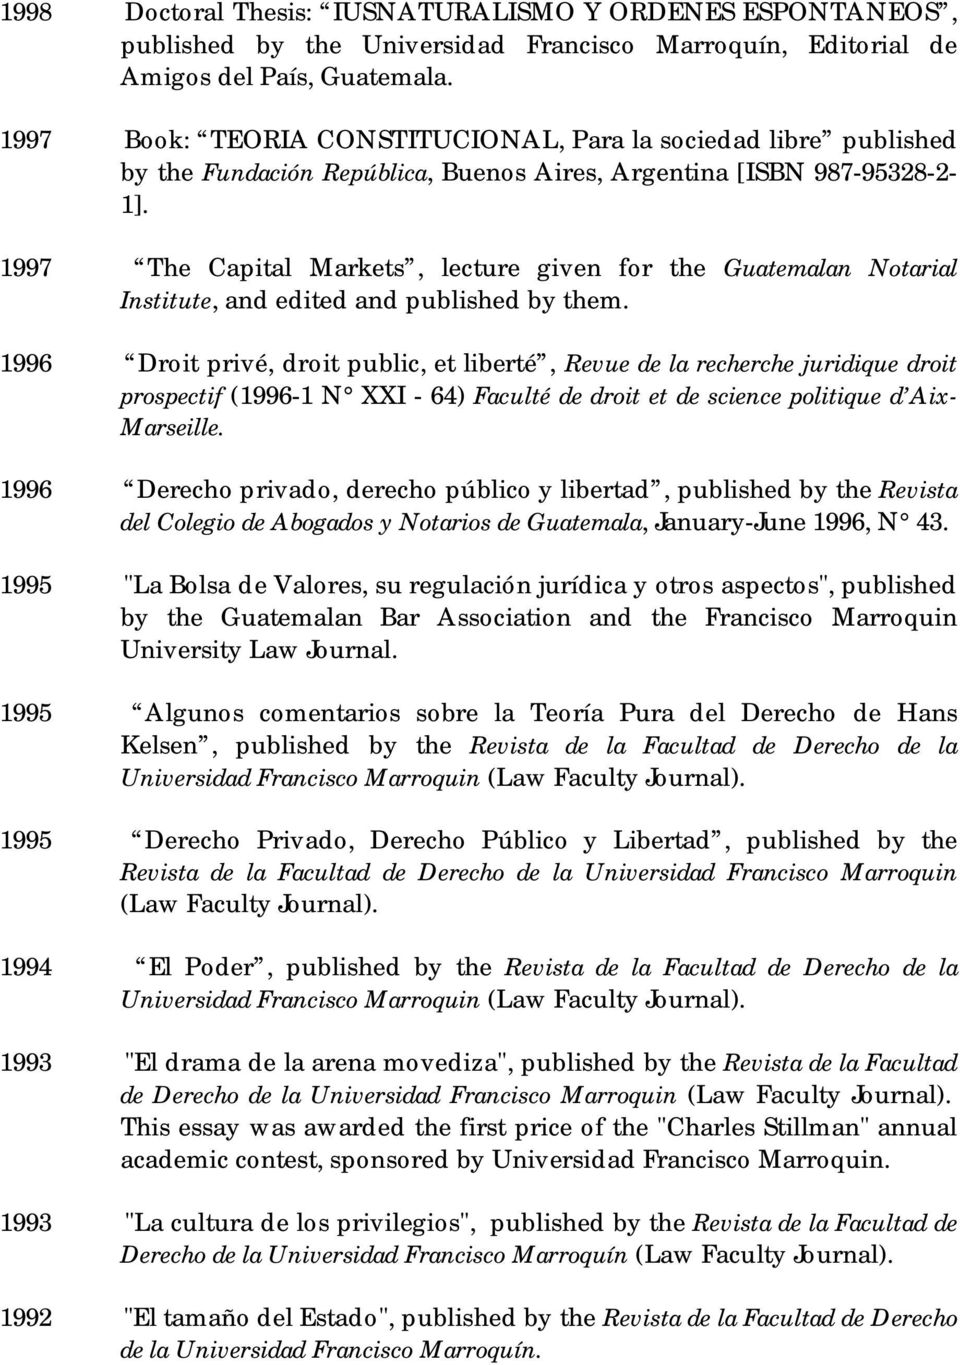 1997 The Capital Markets, lecture given for the Guatemalan Notarial Institute, and edited and published by them.